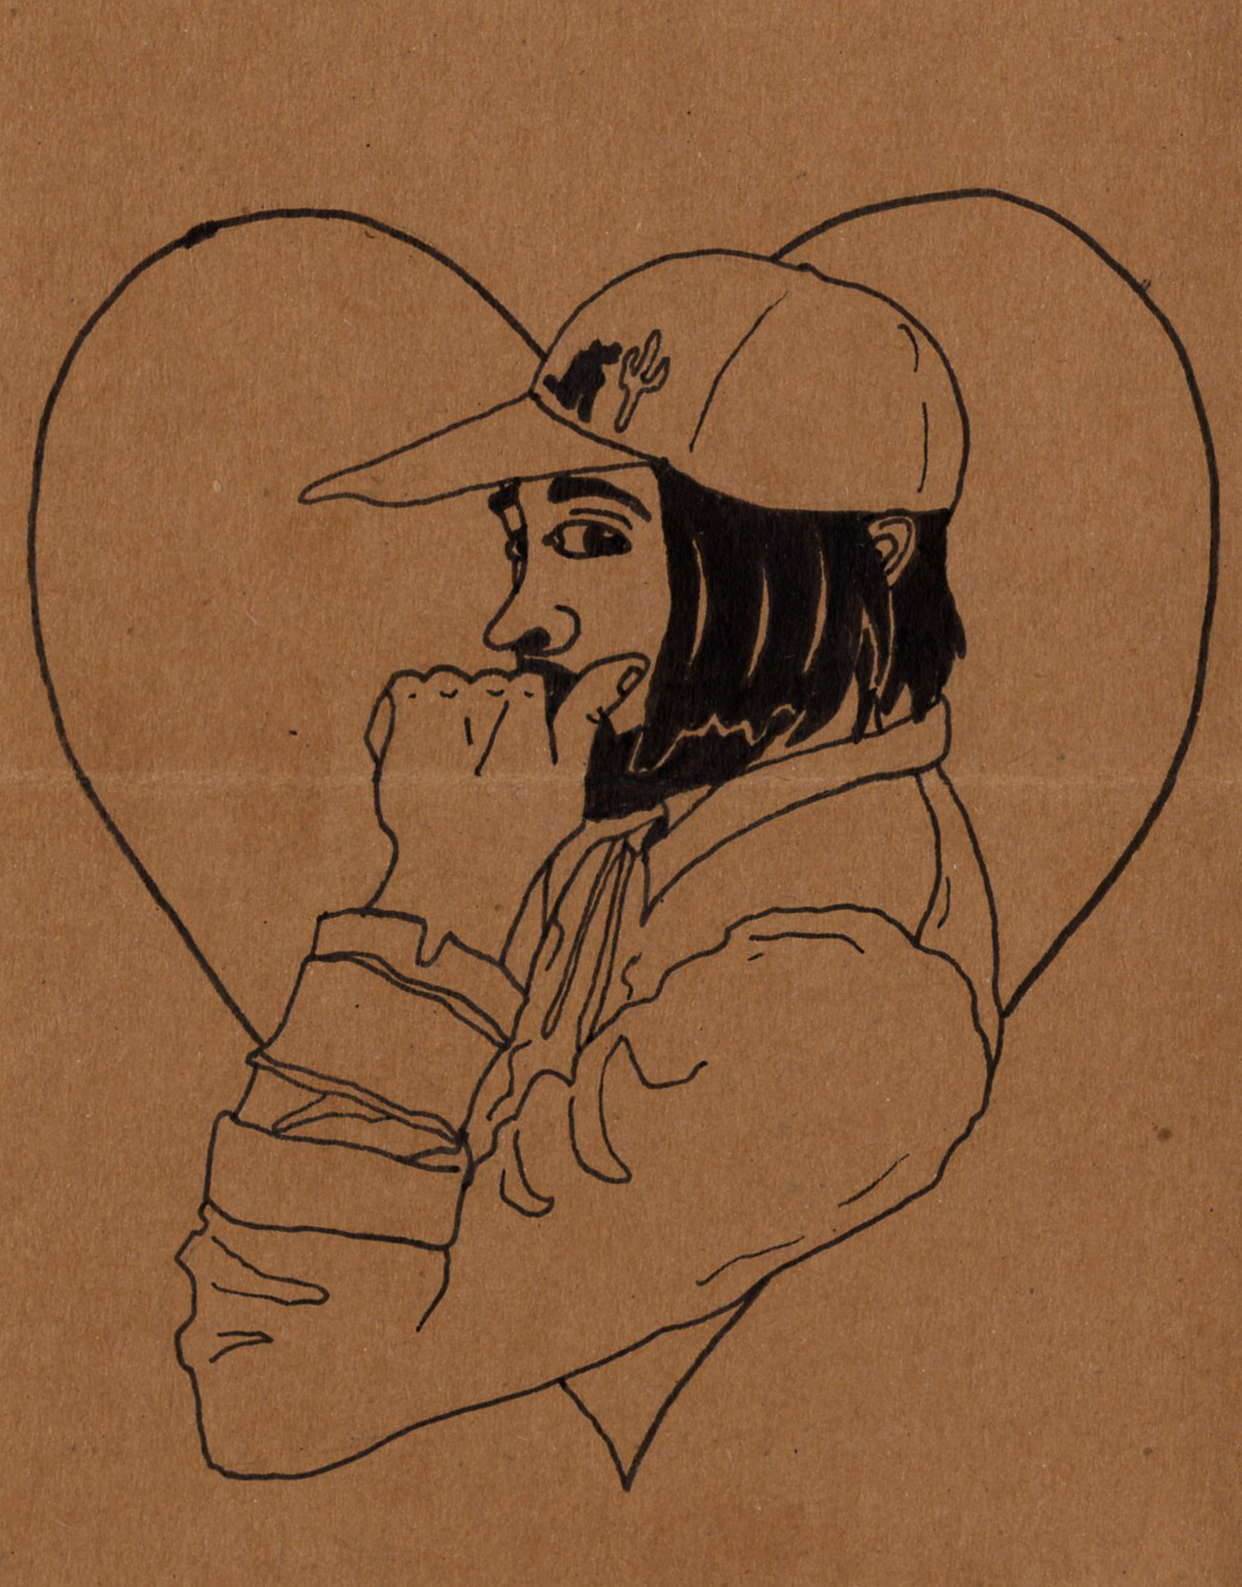 drawing of a friend on the back of a letter, 2019